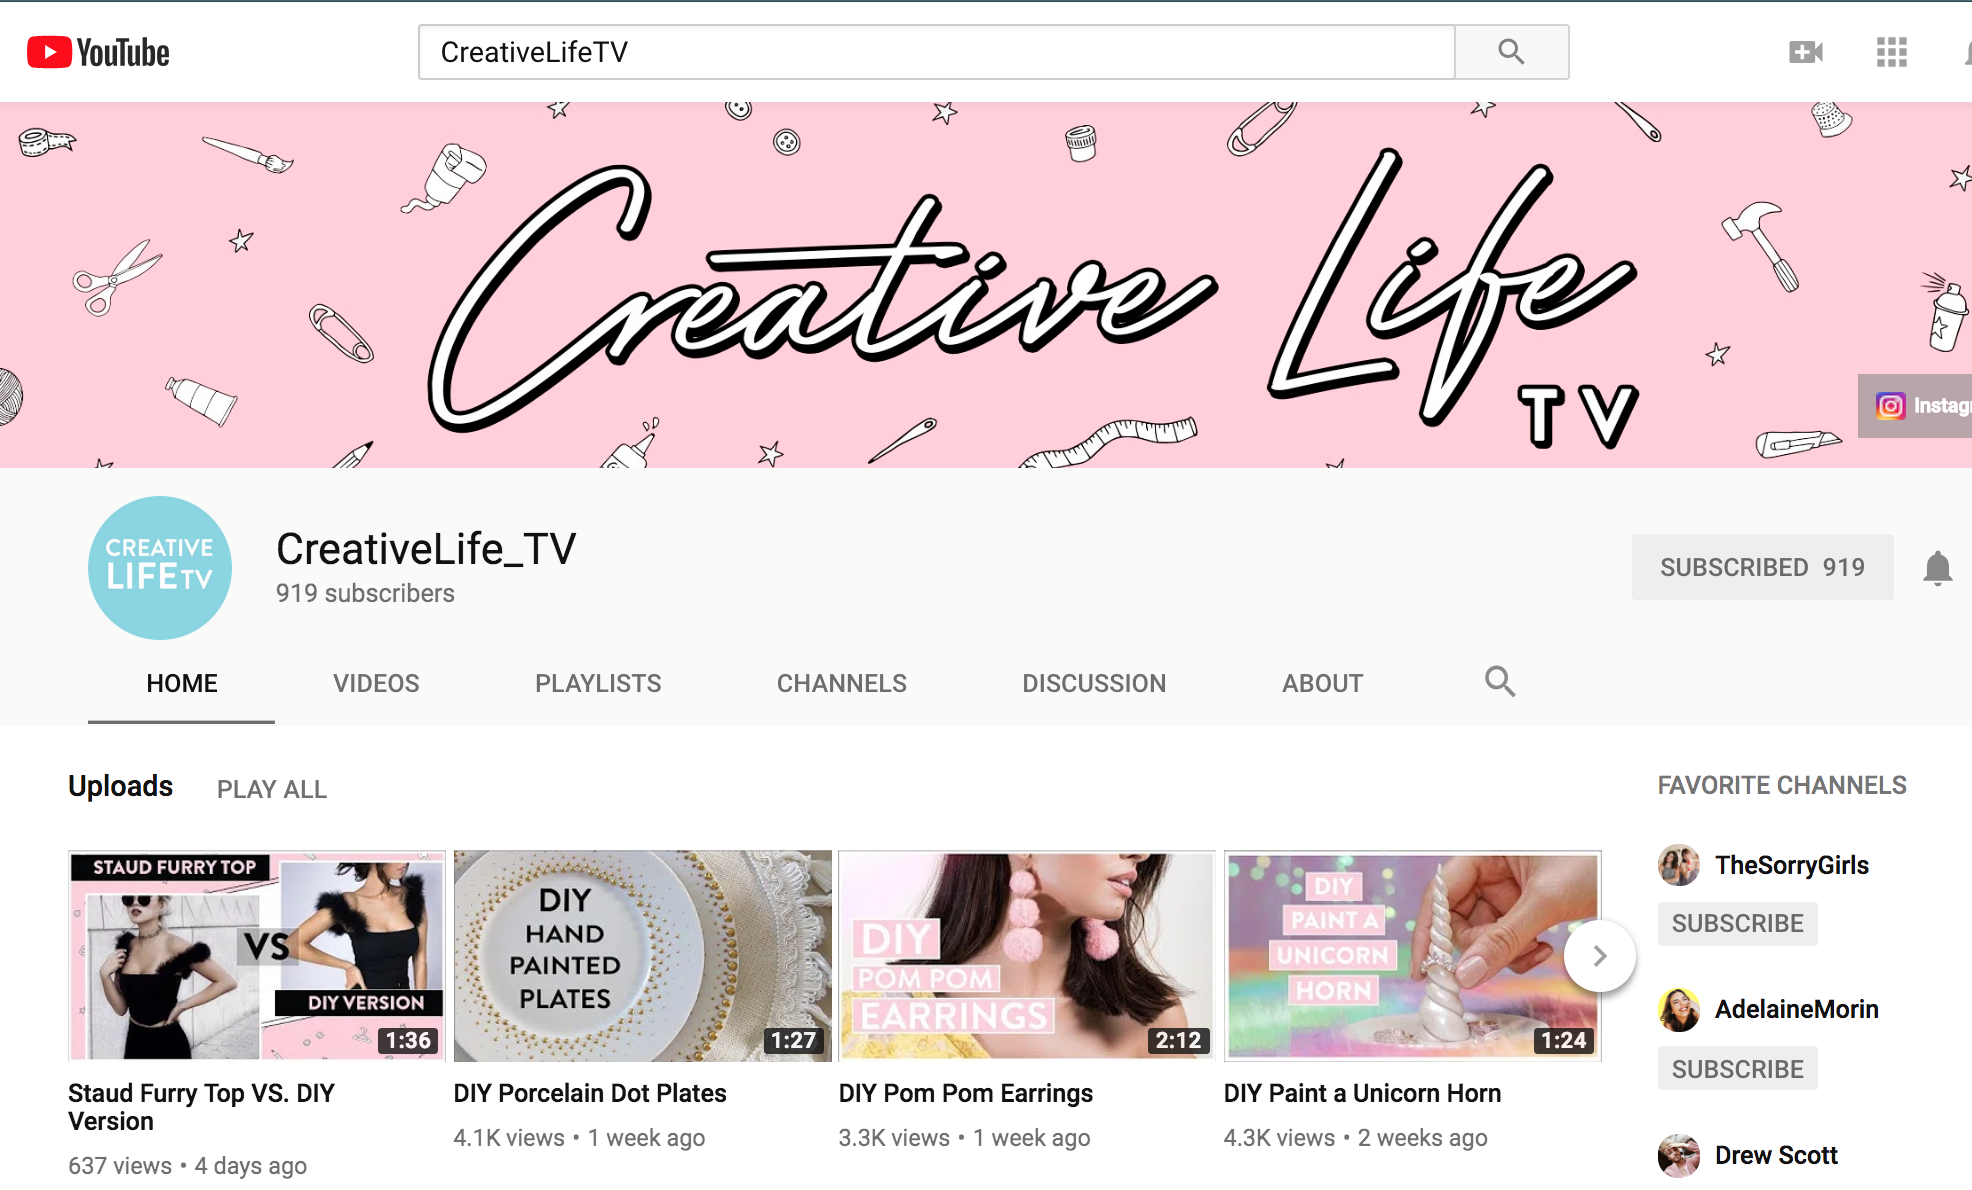 CreativeLifeTV - Channel Management   * YouTube Channel Setup / Strategy   * Weekly video uploads & optimization on YouTube   * Thumbnail design creation  * Sharing on Facebook / Instagram / Pinterest